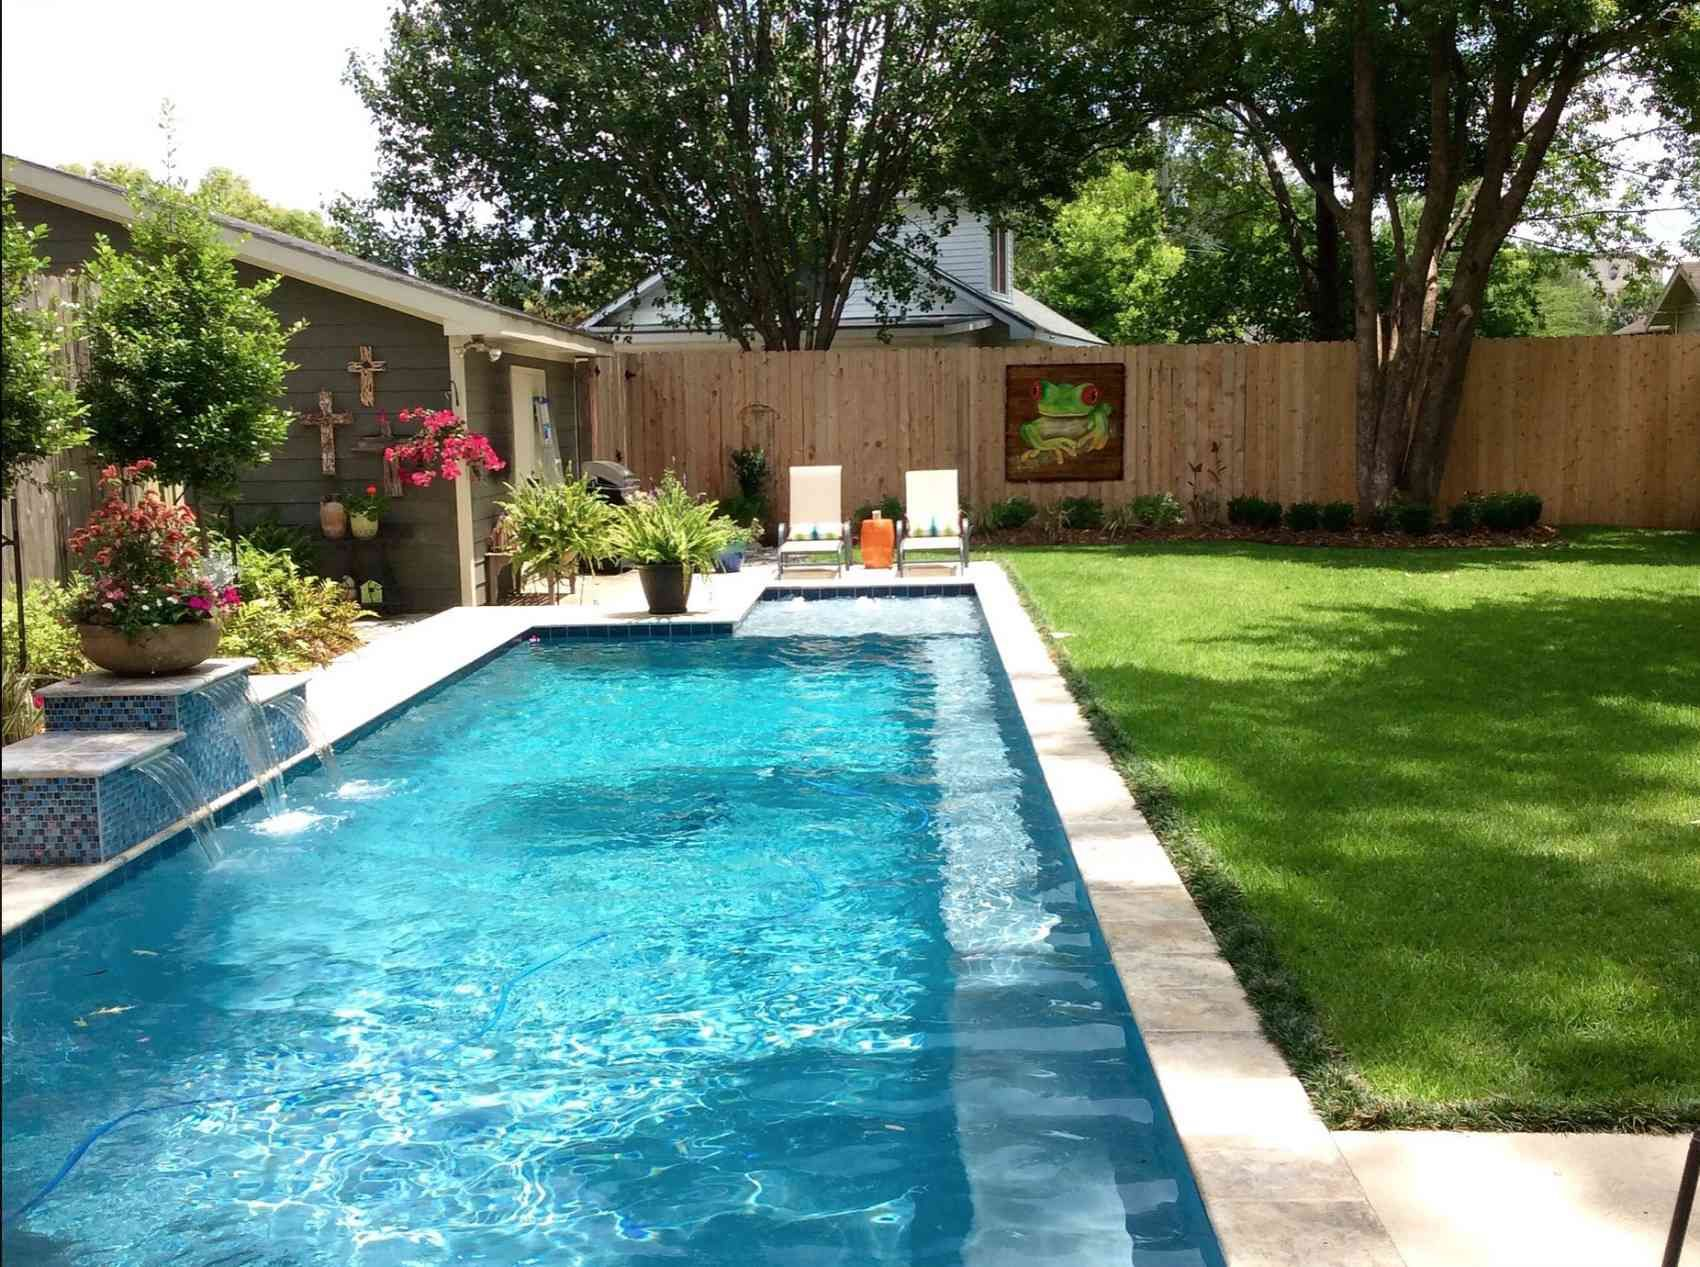 50 Backyard Landscaping Ideas To Inspire You Backyard Pool Landscaping Small Backyard Pools Pool Landscaping